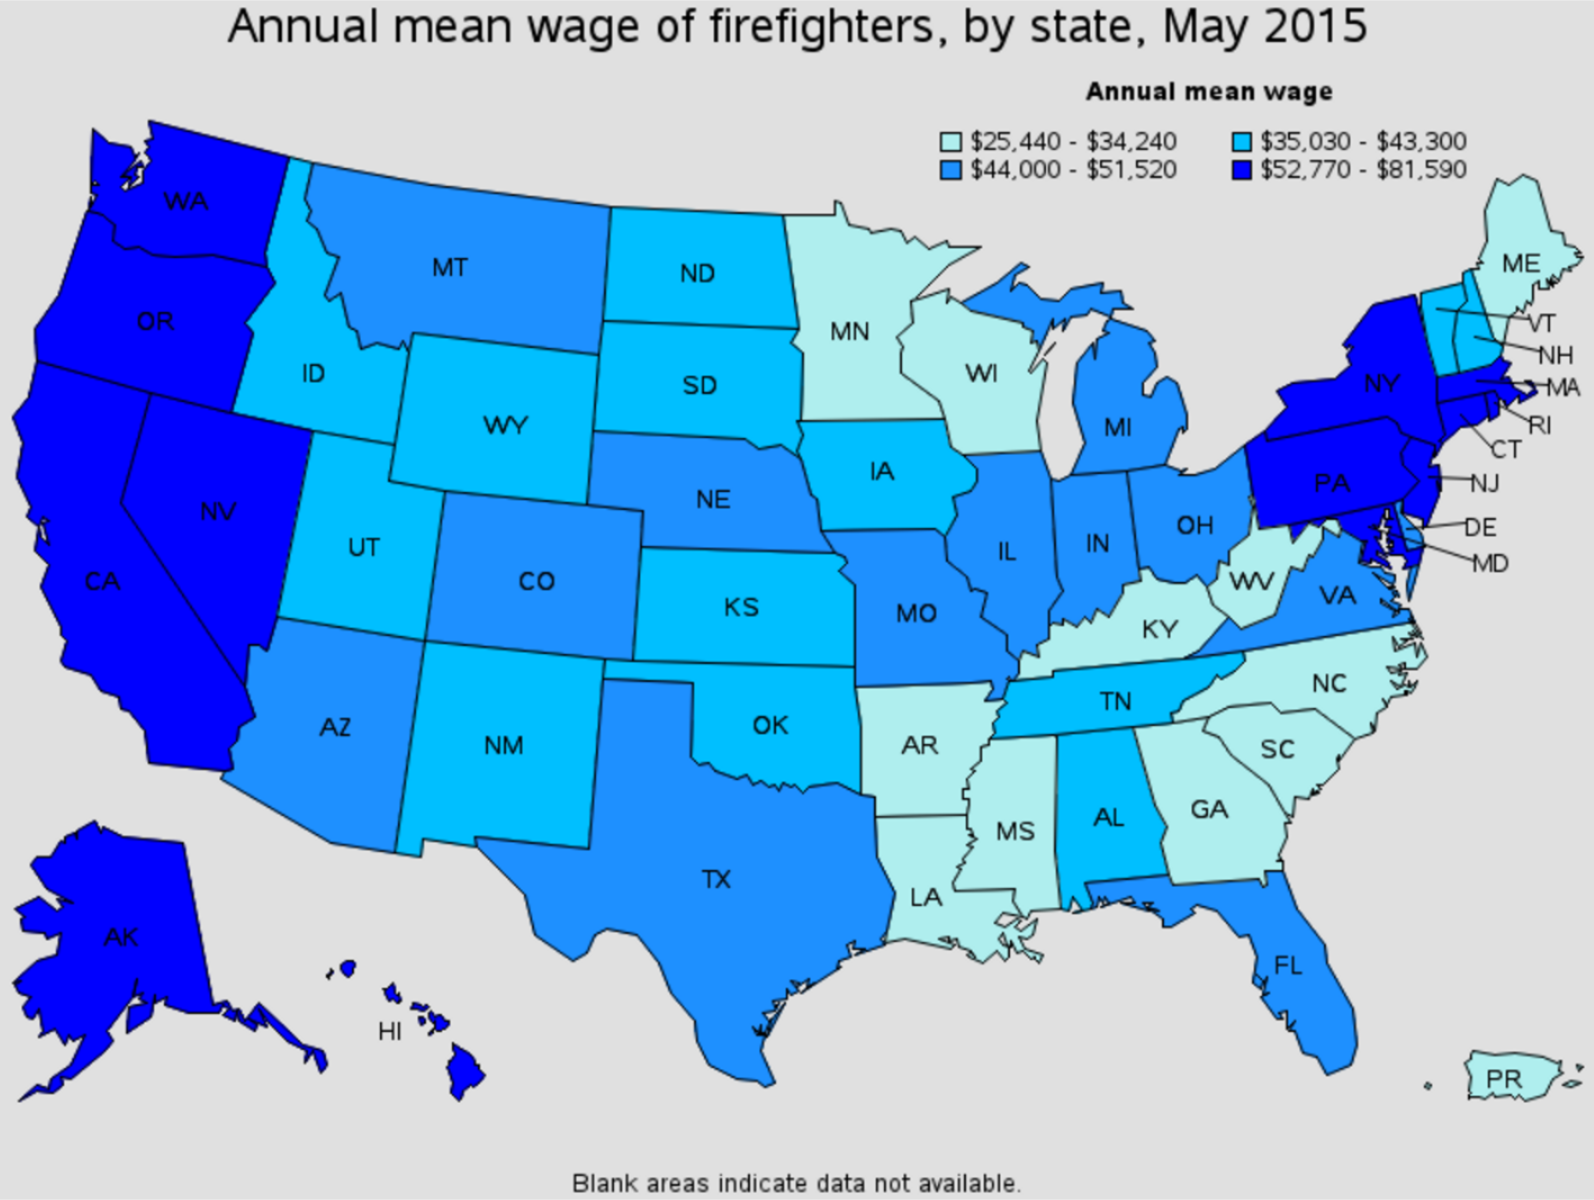 firefighter average salary by state El Cerrito California